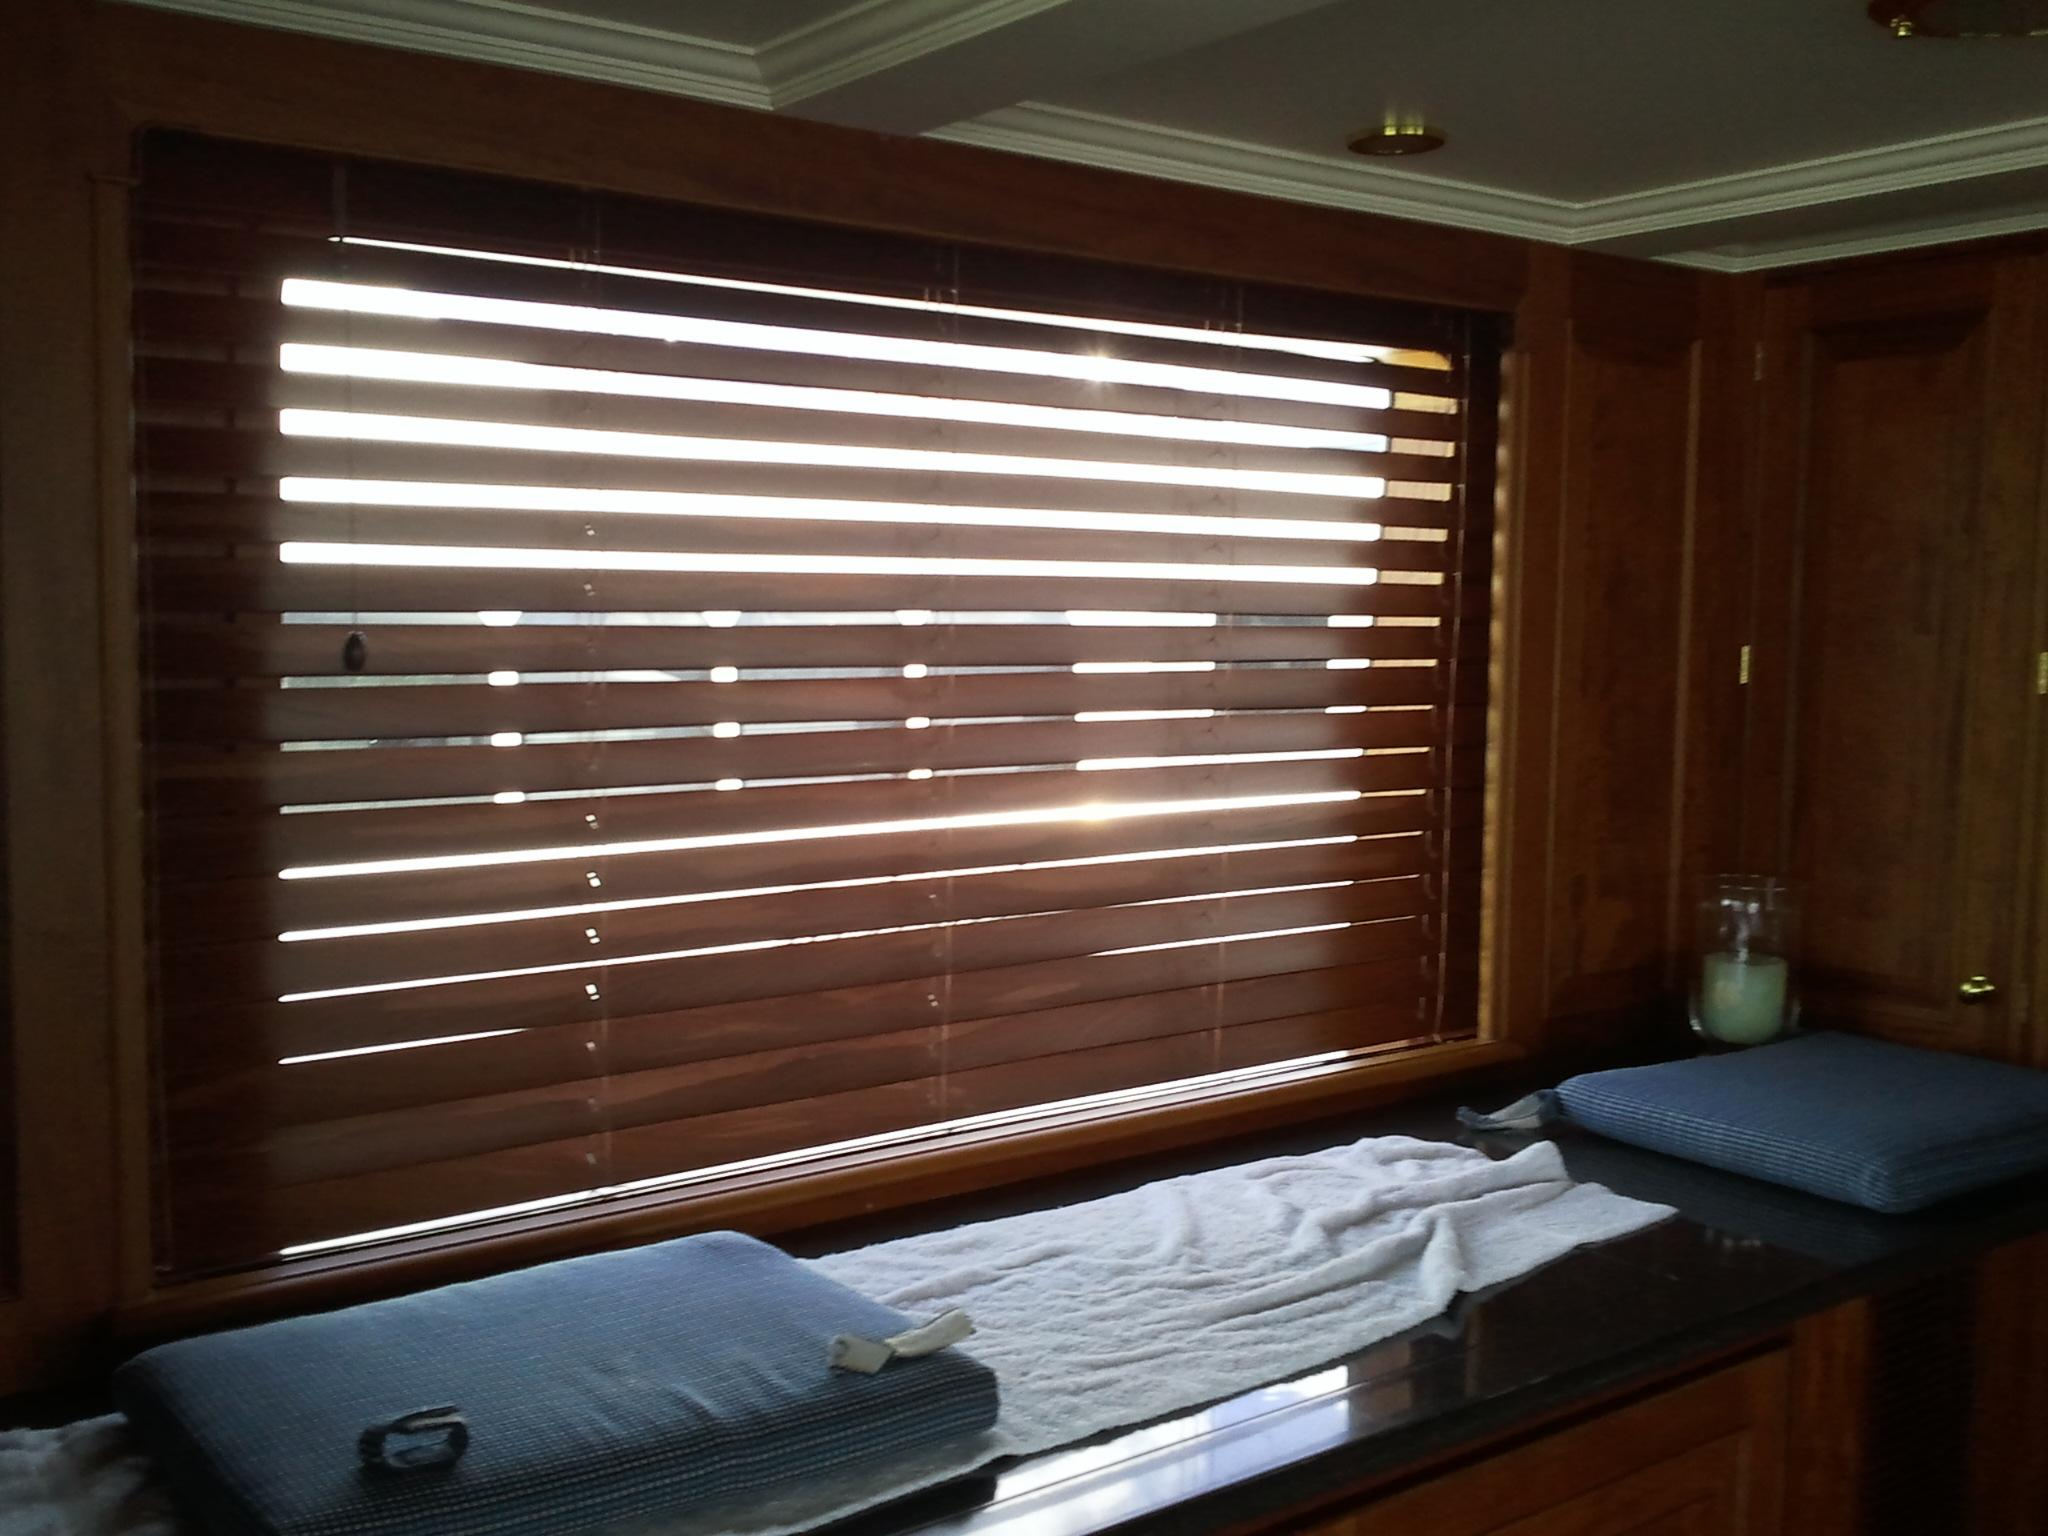 slats how repair blind blinds levolor levolors cordless replacement dep best vertical home wood valance for shorten clips expert